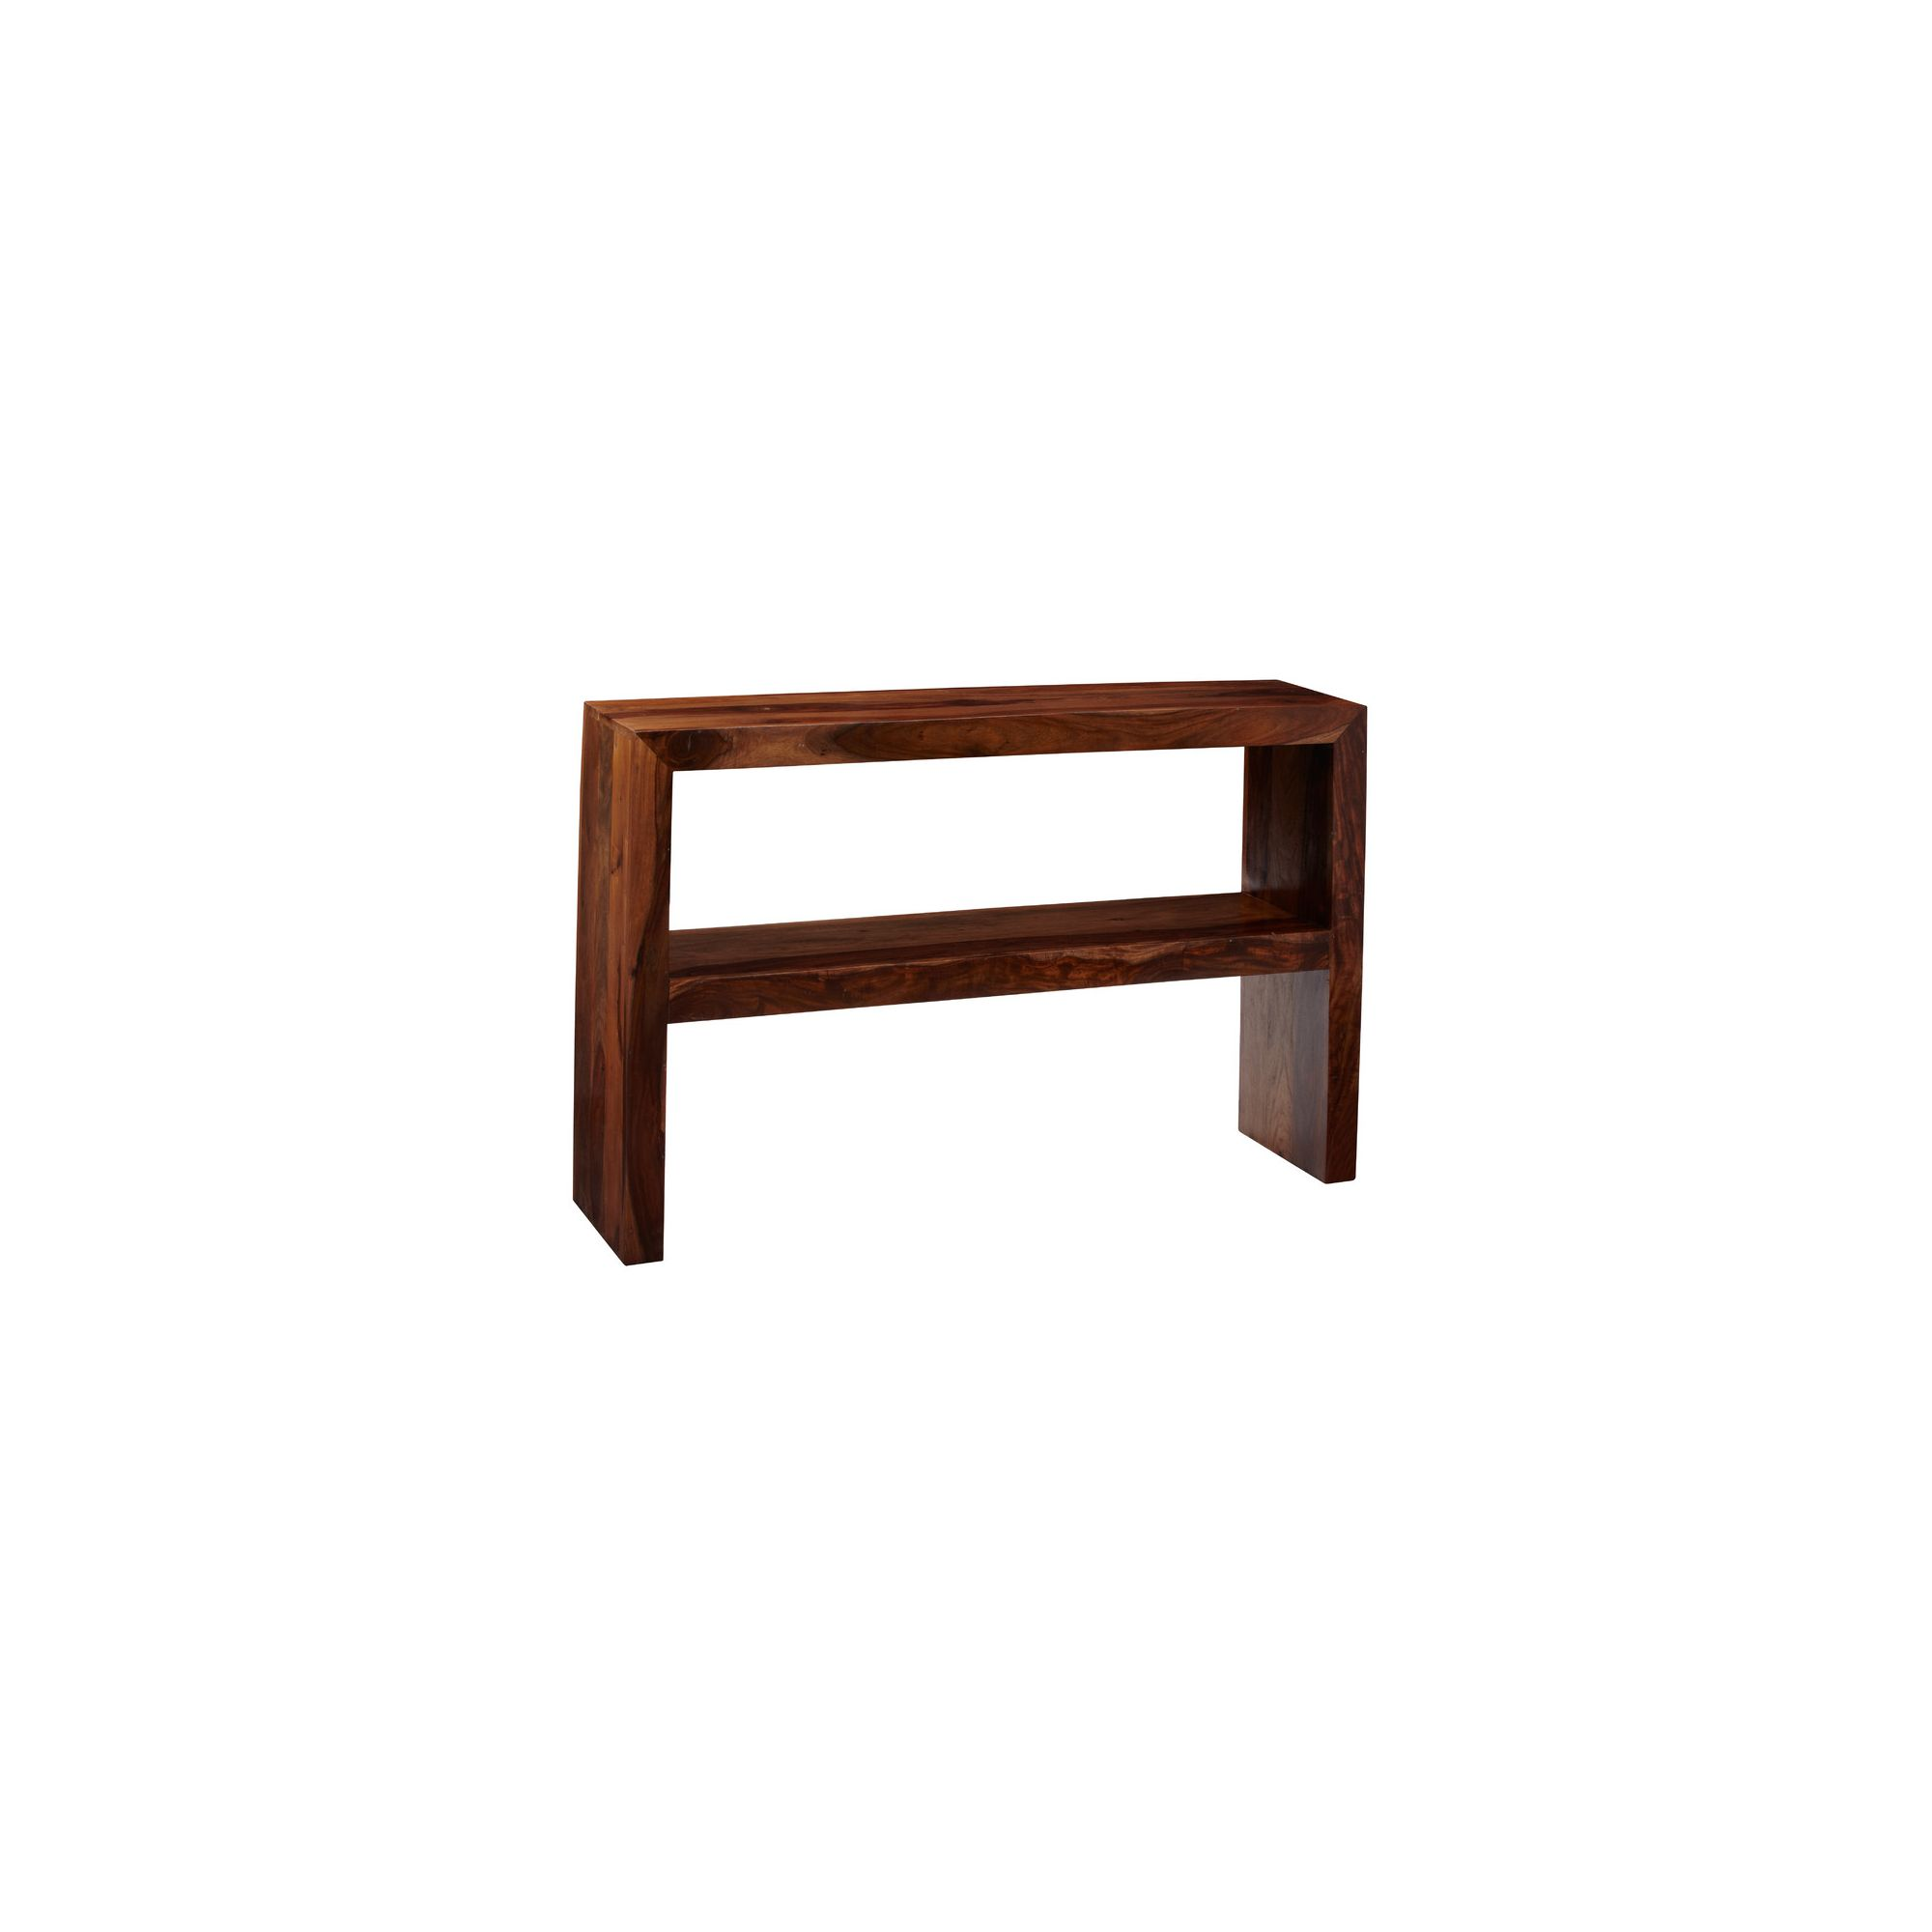 Indian Hub Cube Sheesham Console Table with Shelf at Tesco Direct